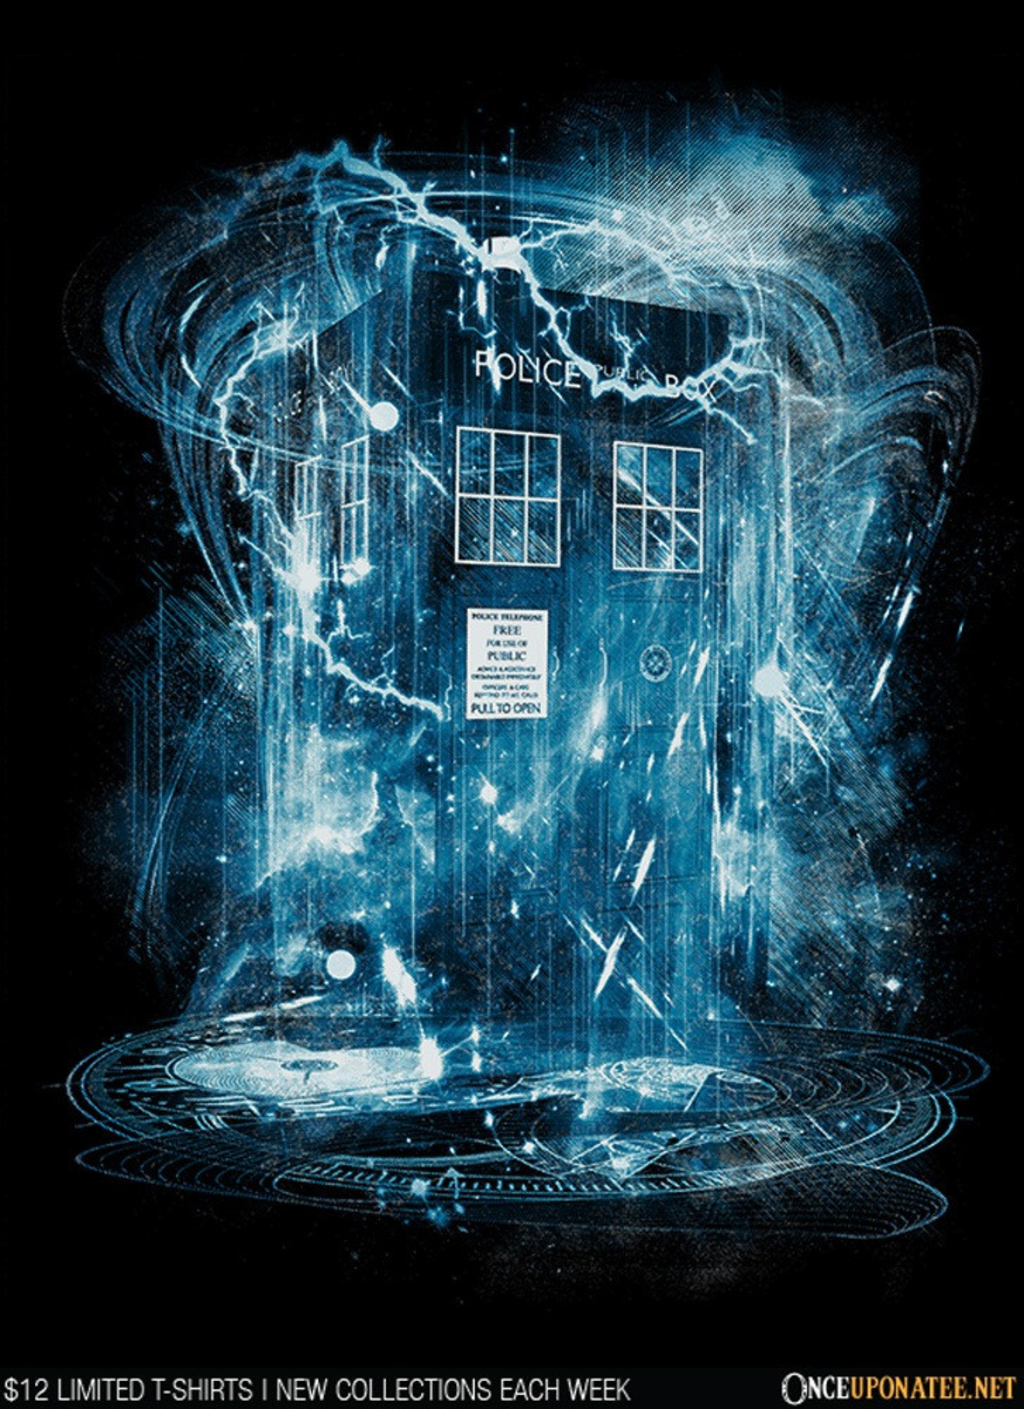 Once Upon a Tee: Space and Time Storm